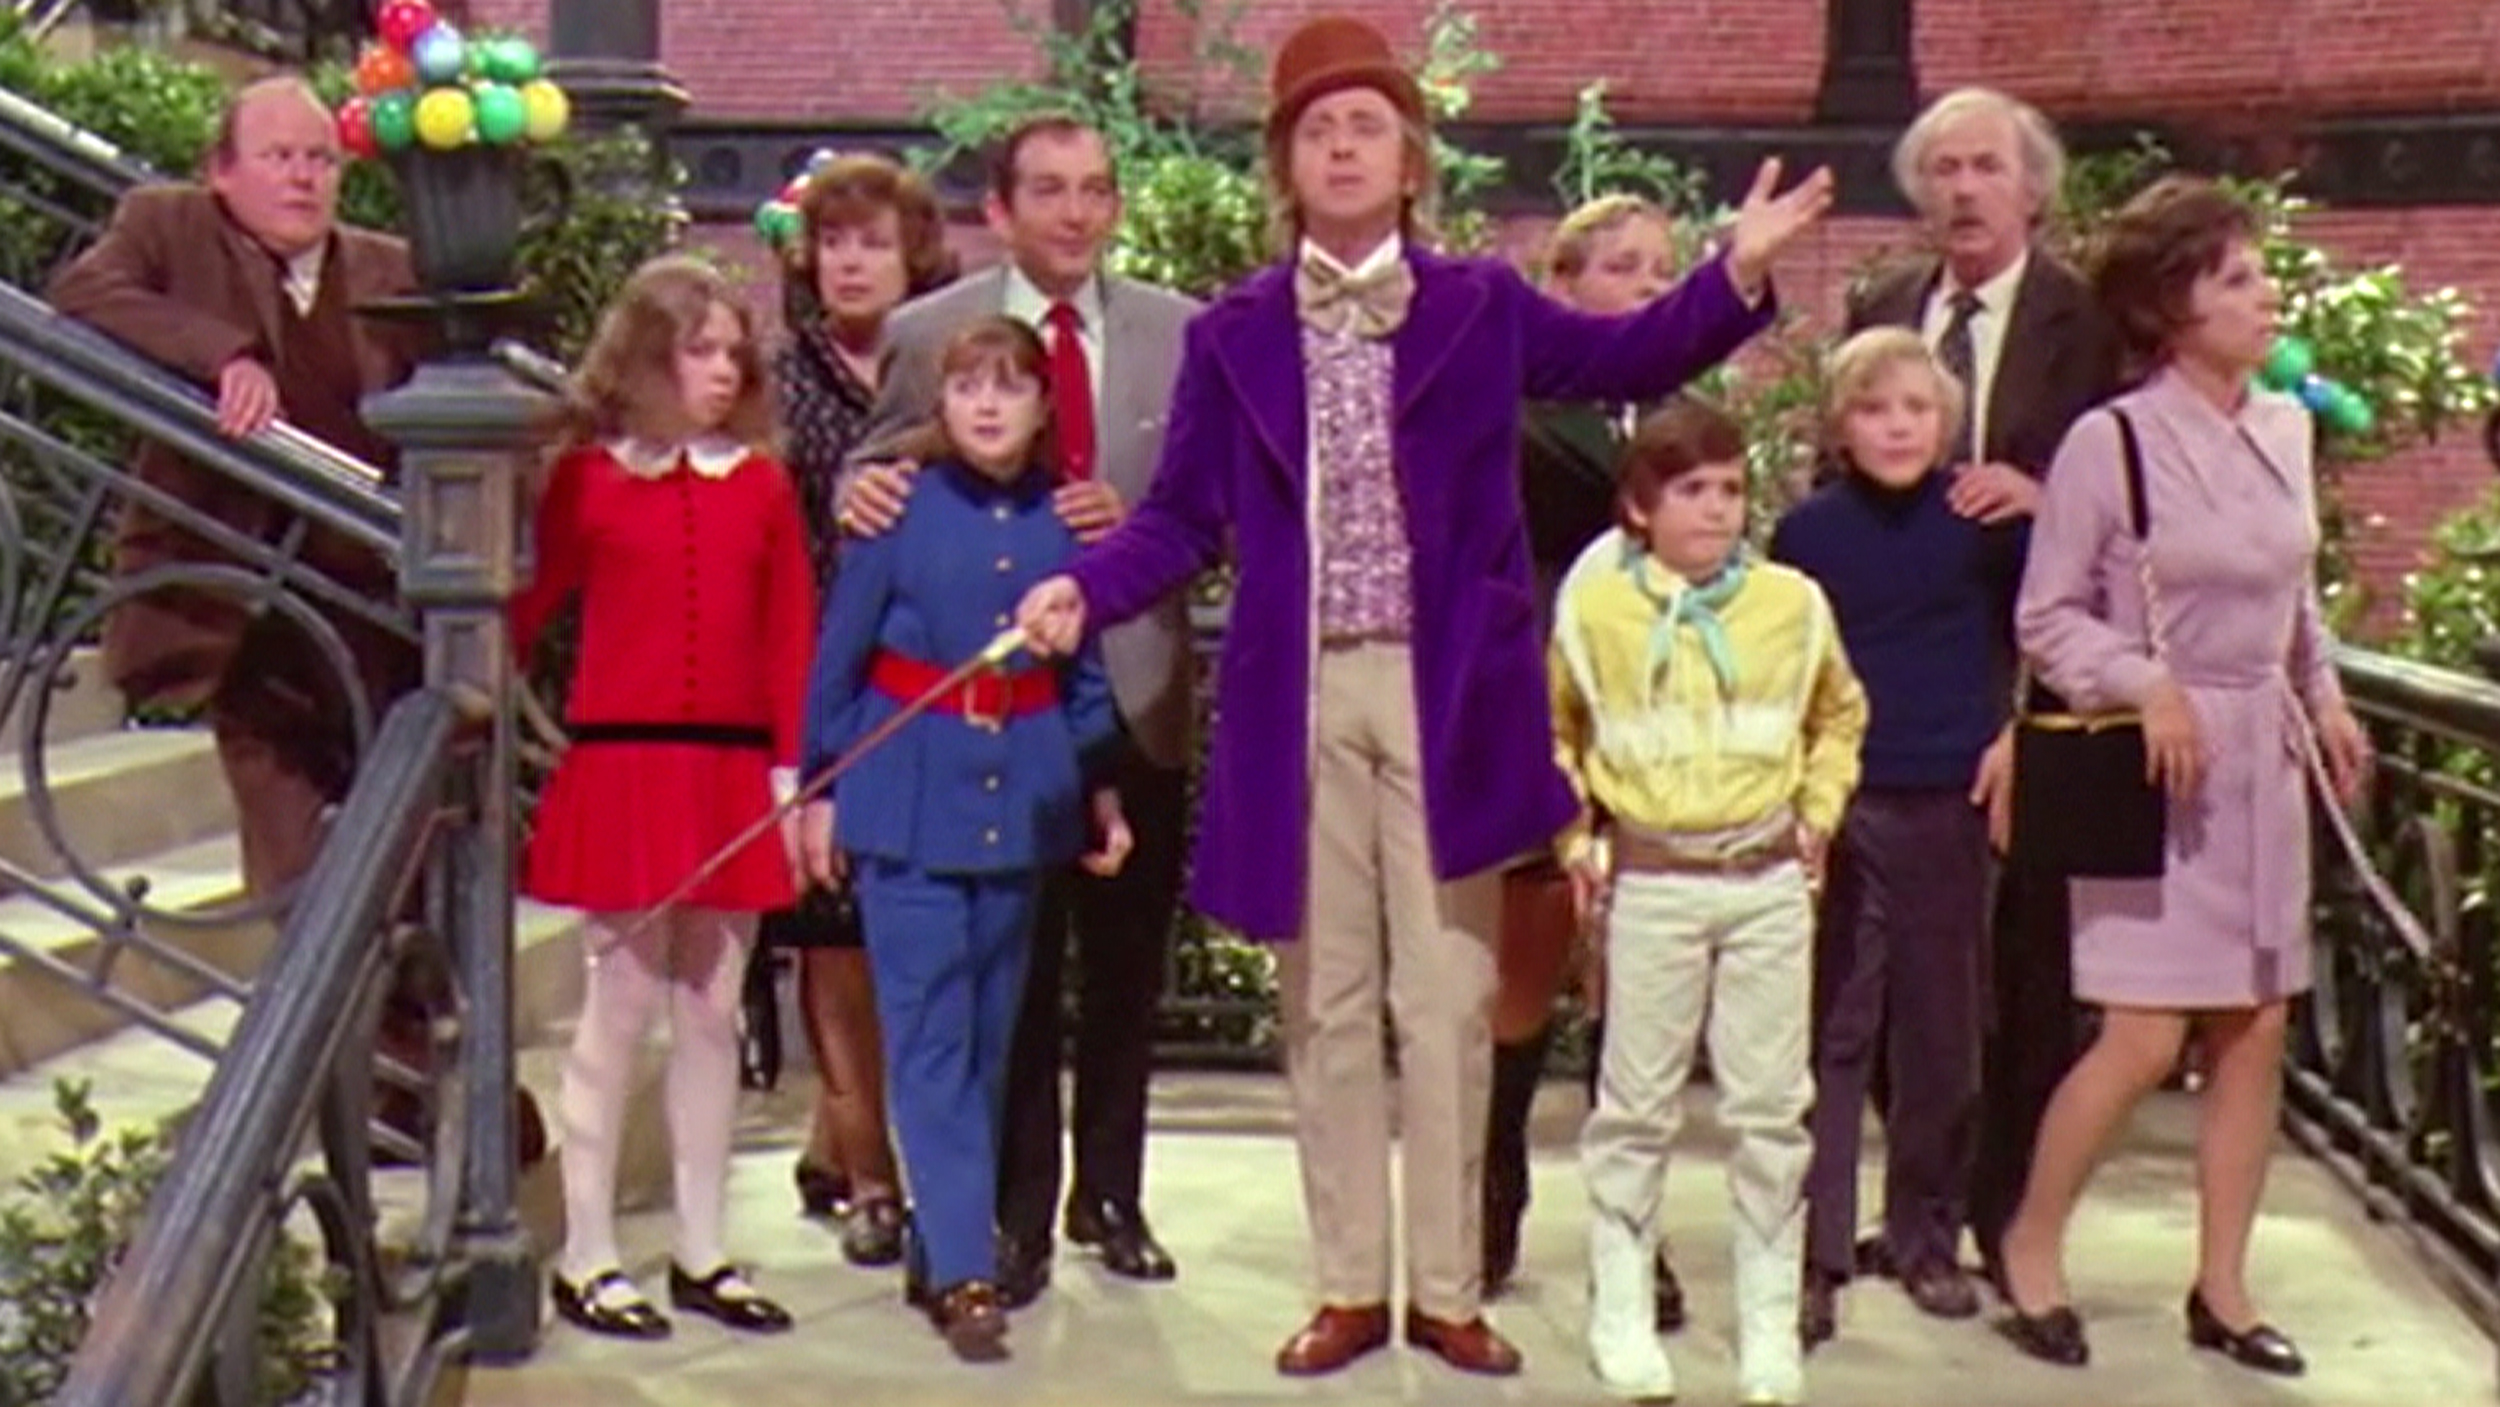 5 Lessons We Can Learn from Willy Wonka and the Chocolate Factory